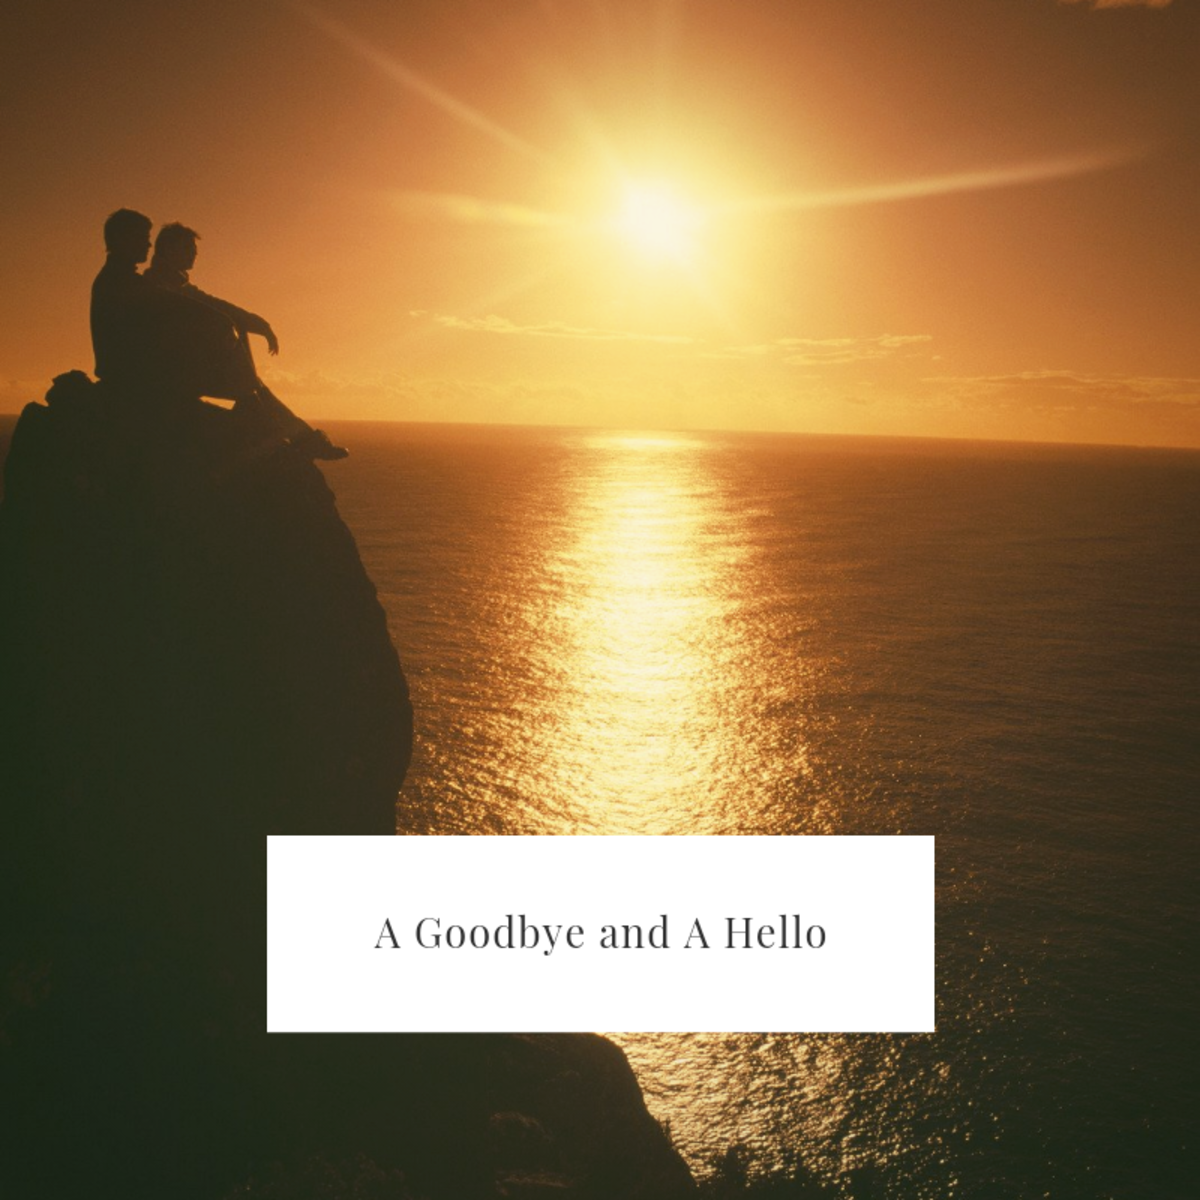 A goodbye and a hello